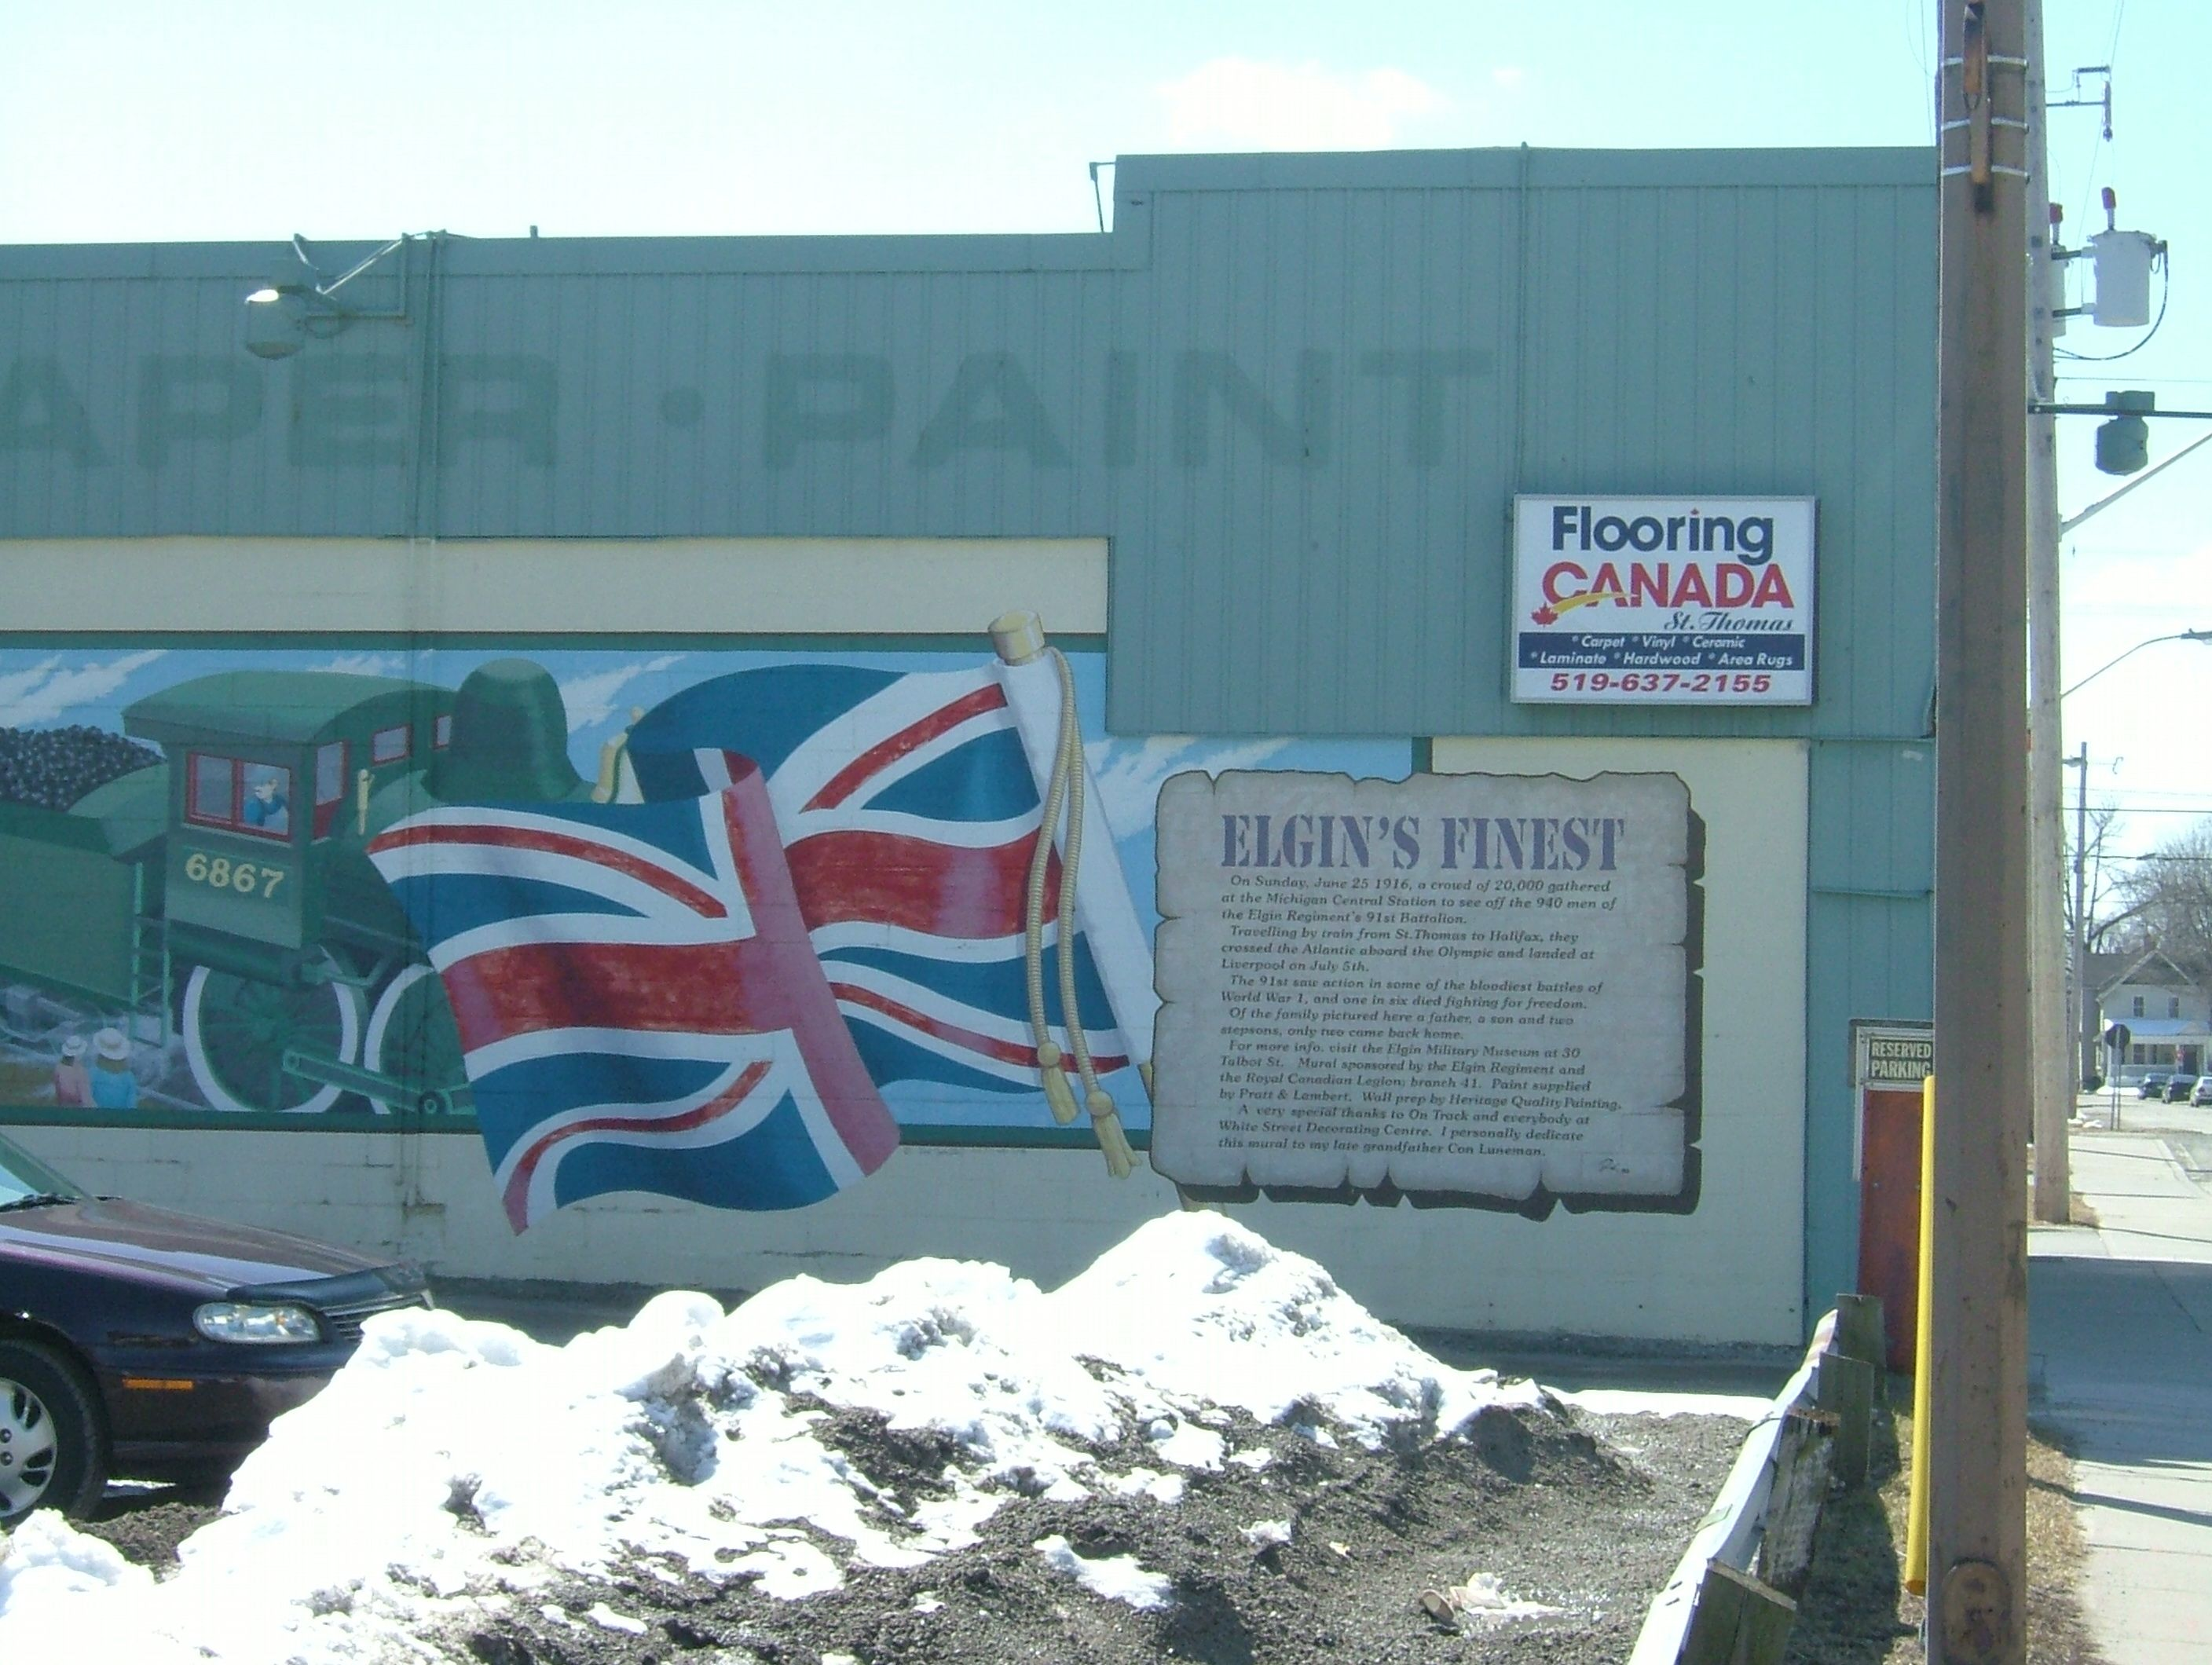 Wall Mural Building In St. Thomas Ontario Murals